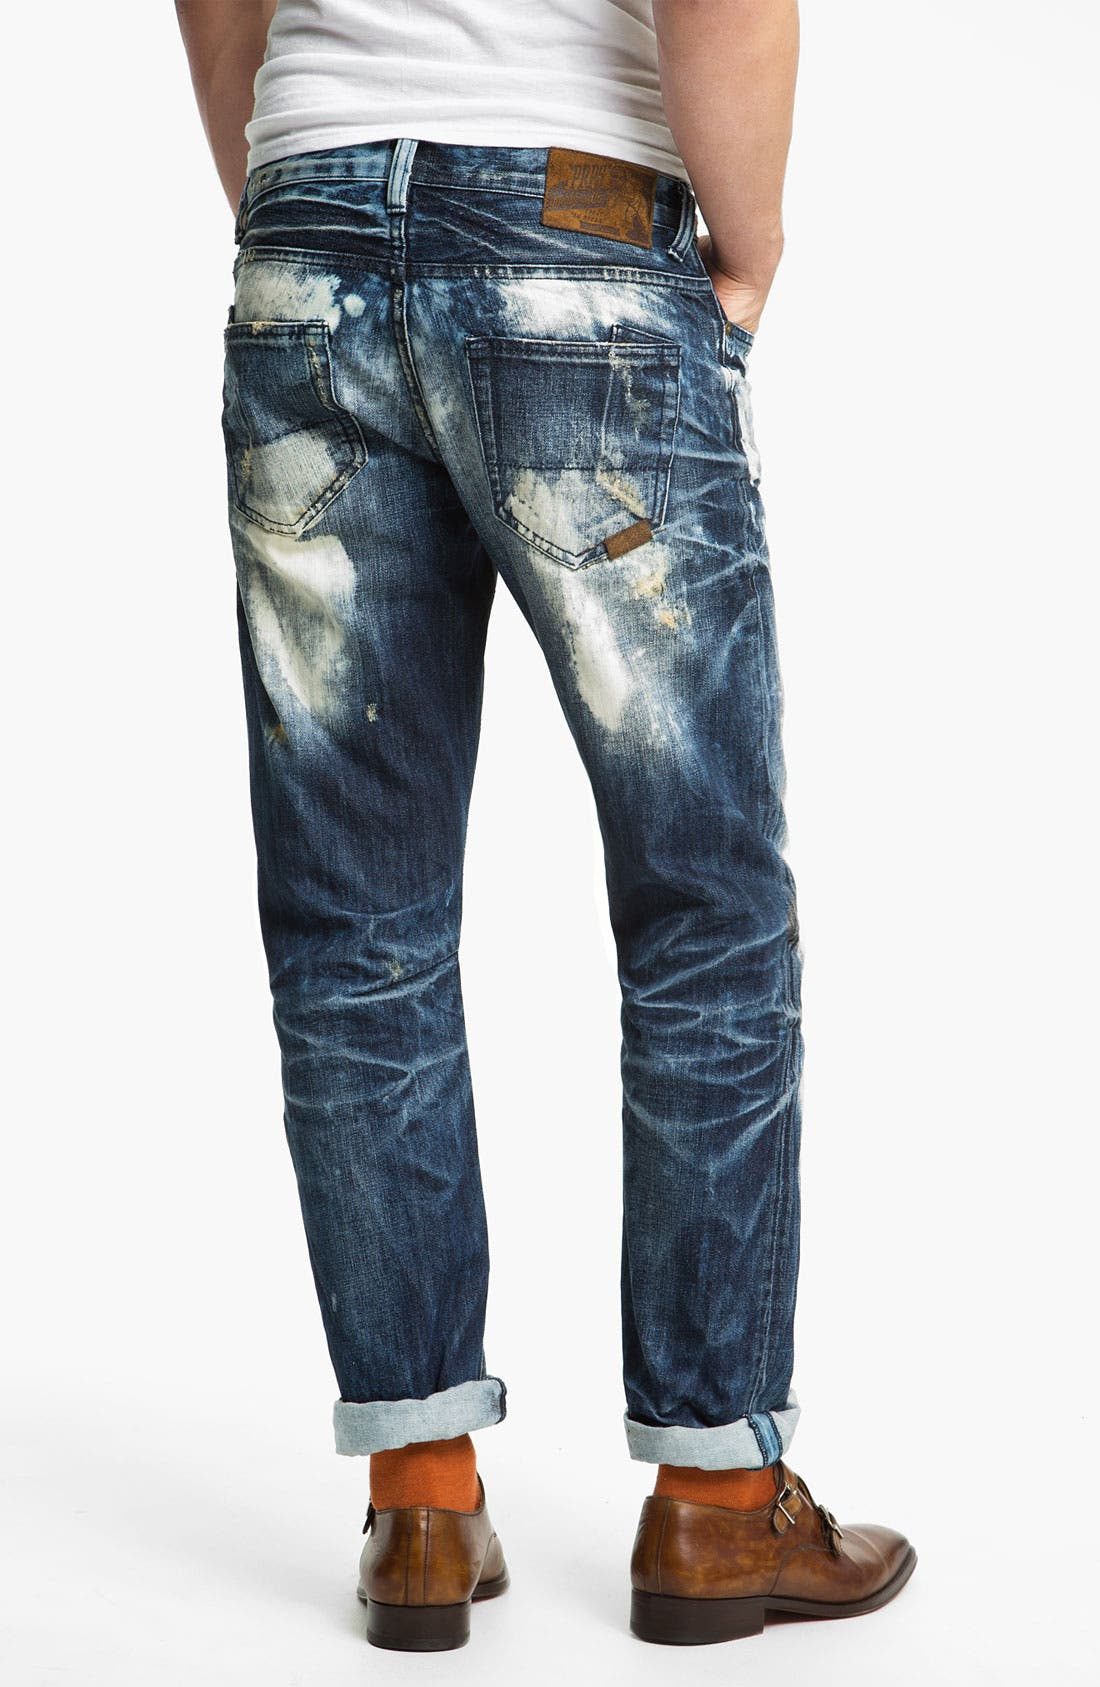 Alternate Image 1 Selected - PRPS 'Valley of Silence Barracuda' Straight Leg Jeans (Indigo)